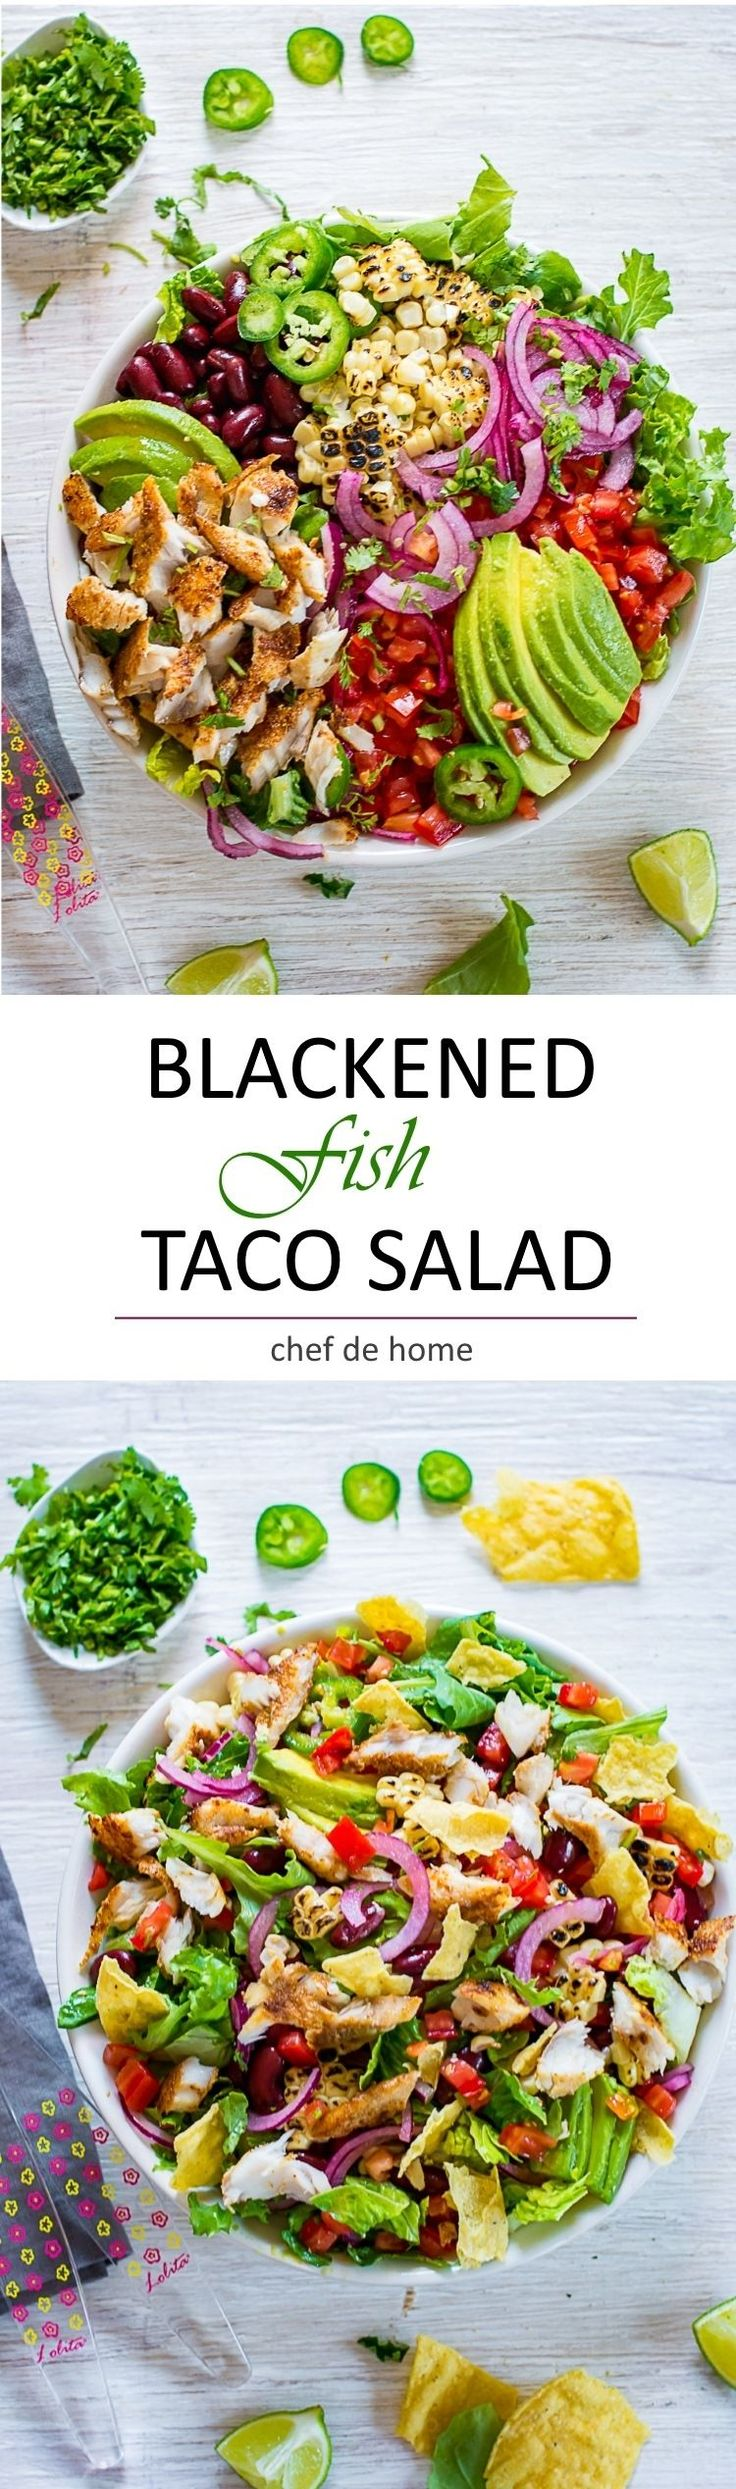 Blackened Fish Taco Salad - A healthy taco salad bowl with blackened spiced Cod fish, crunchy tortillas and amazingly delicious avocado cotija cheese dressing!